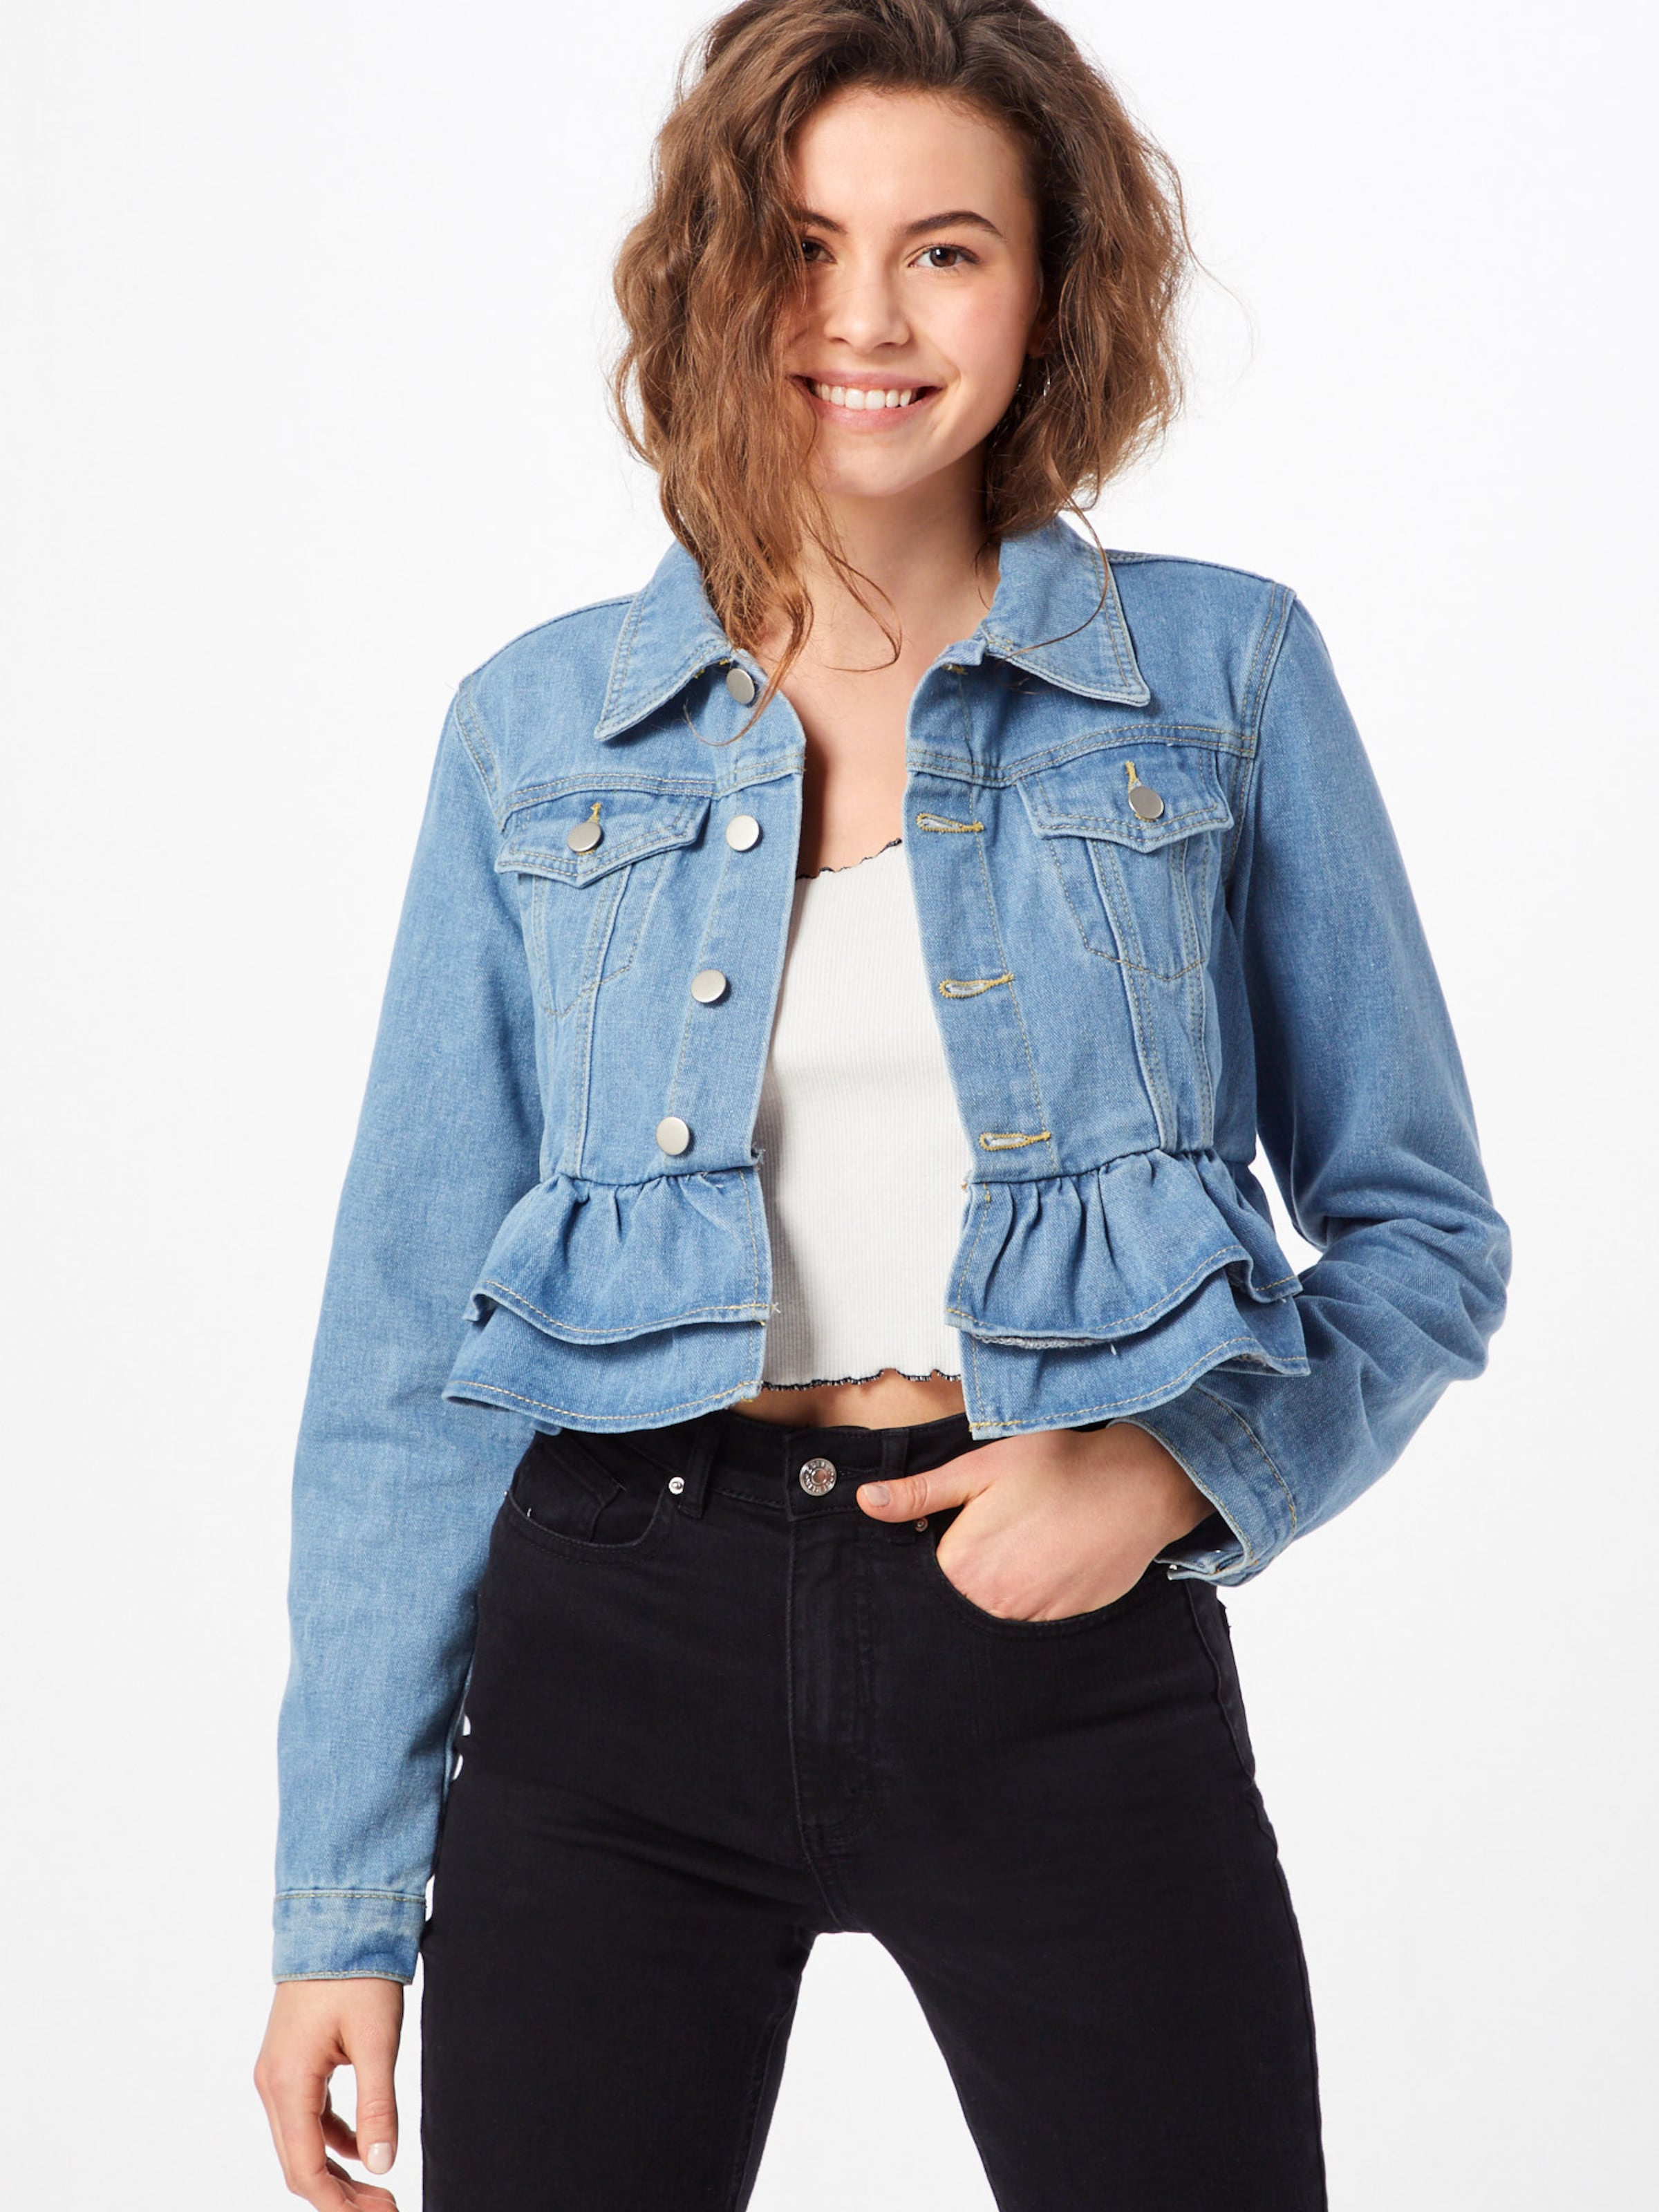 Missguided Jacke Missguided Missguided Hellblau Hellblau Jacke In In Missguided Hellblau Jacke In ulJc3F1TK5